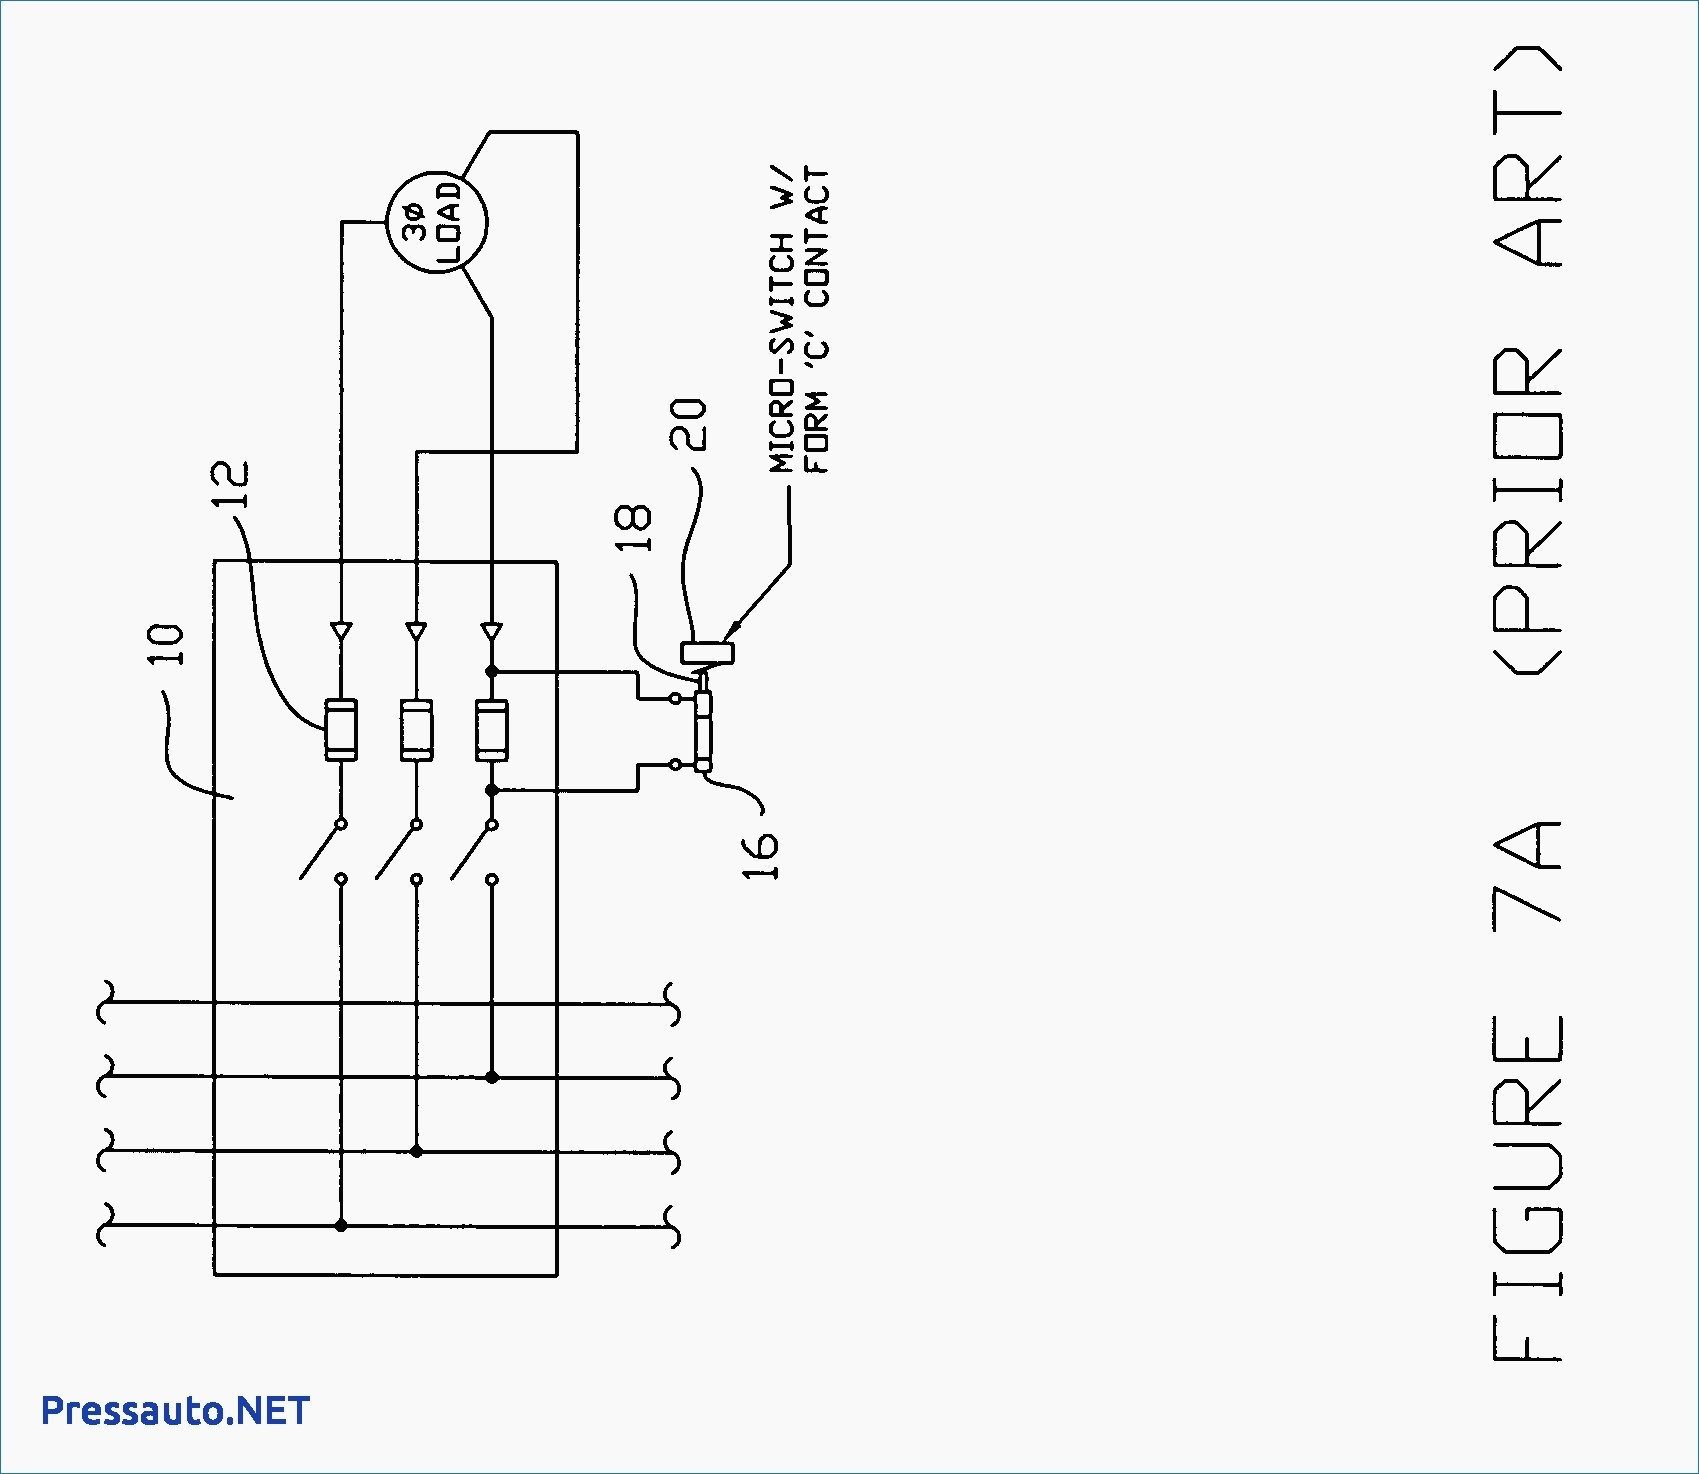 Wiring Diagram On Siemens Shunt Trip Circuit Breaker Wiring Diagram